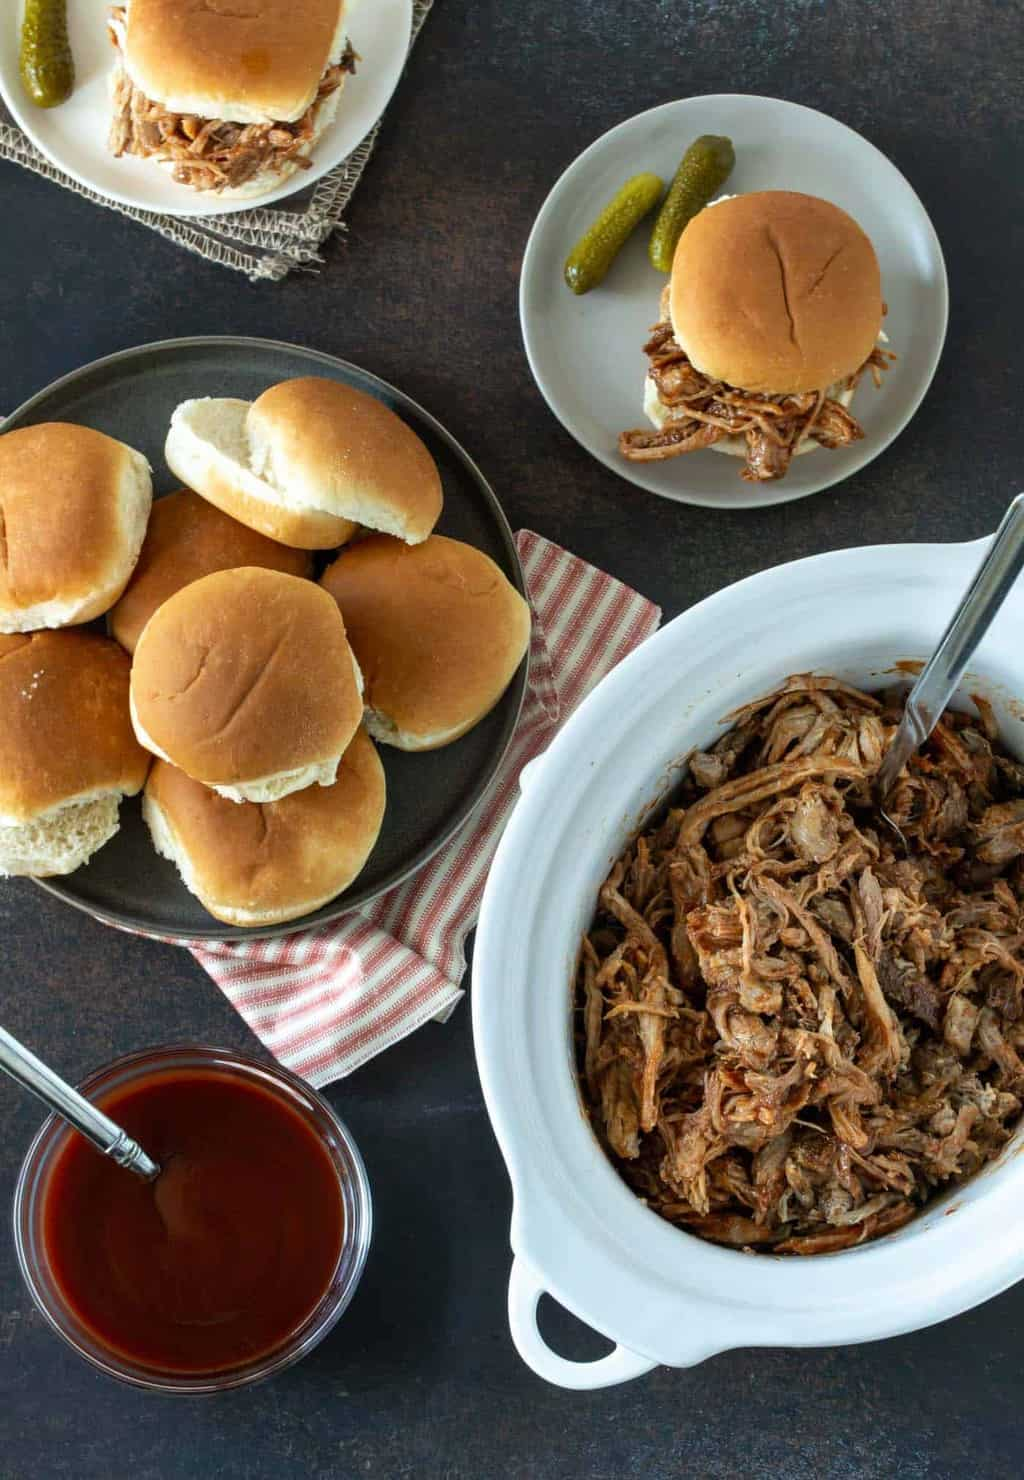 Top down image of pulled pork recipe in white slow cooker with buns on side for serving.